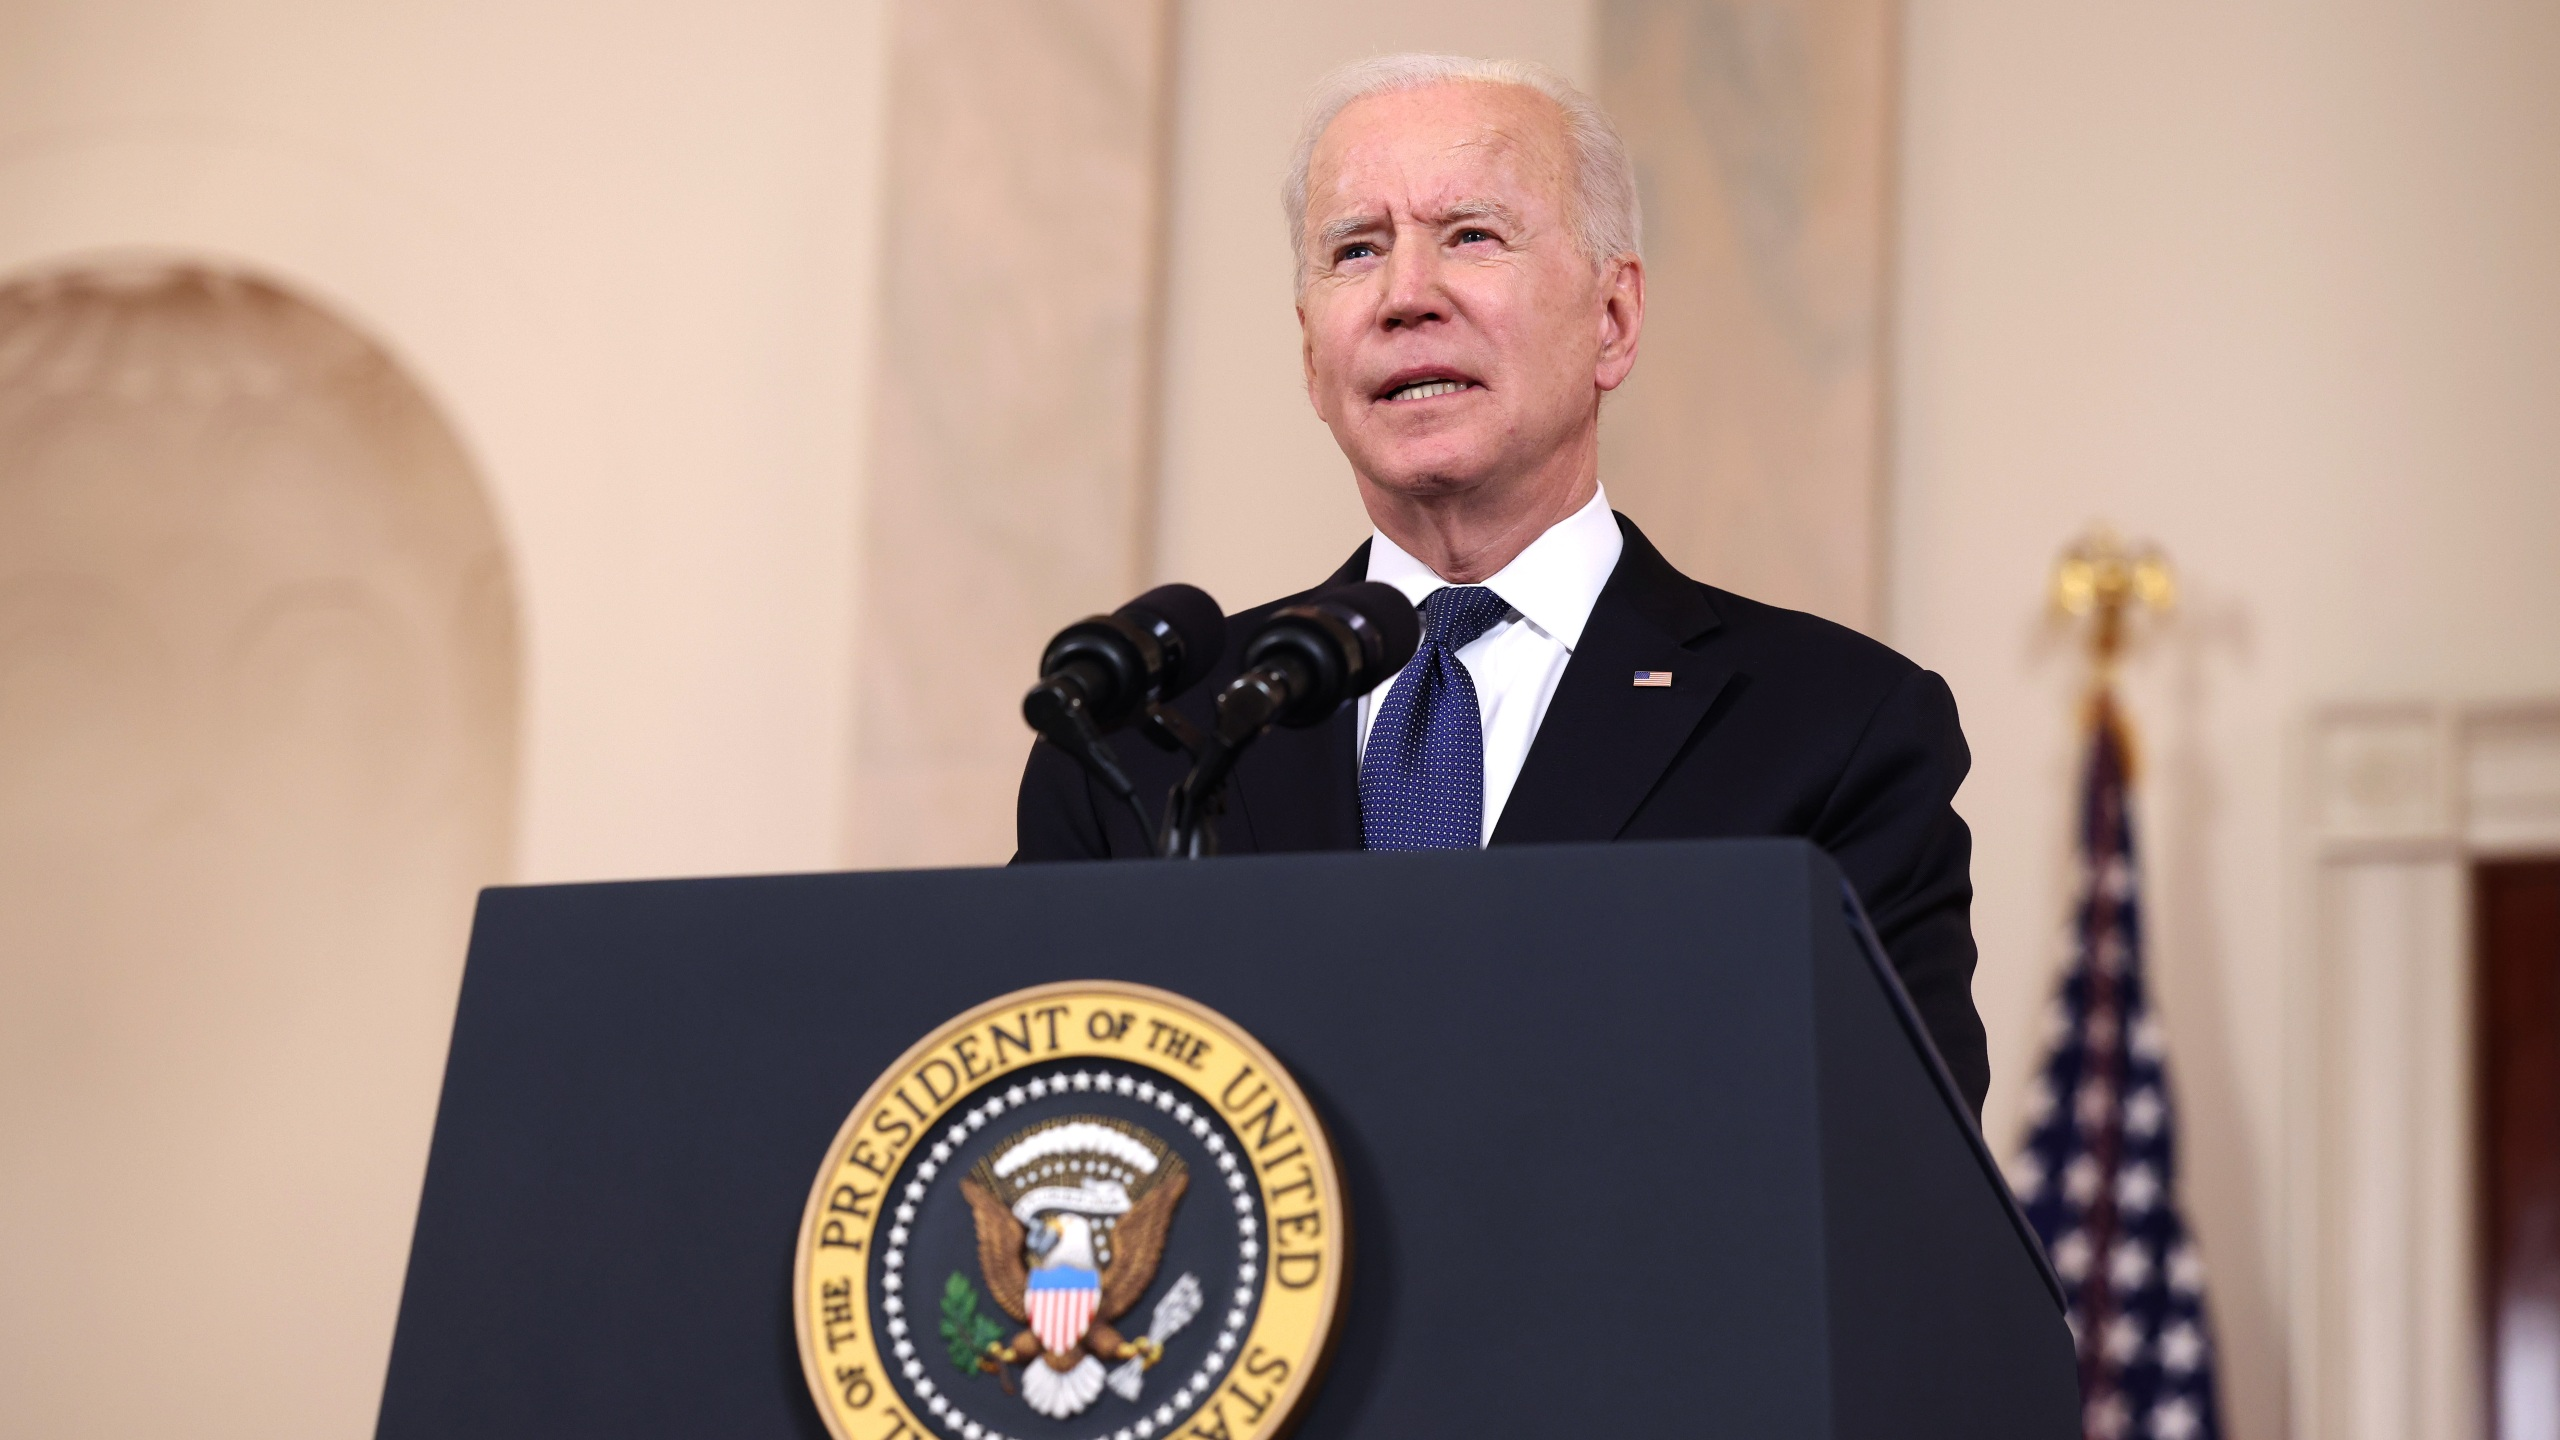 U.S. President Joe Biden delivers remarks on the conflict in the Middle East from the White House on May 20, 2021 in Washington, D.C. Israel and Hamas announced that they would agree to a cease-fire, which will take into effect on Friday, following days of fighting that claimed more than 200 lives. (Anna Moneymaker/Getty Images)